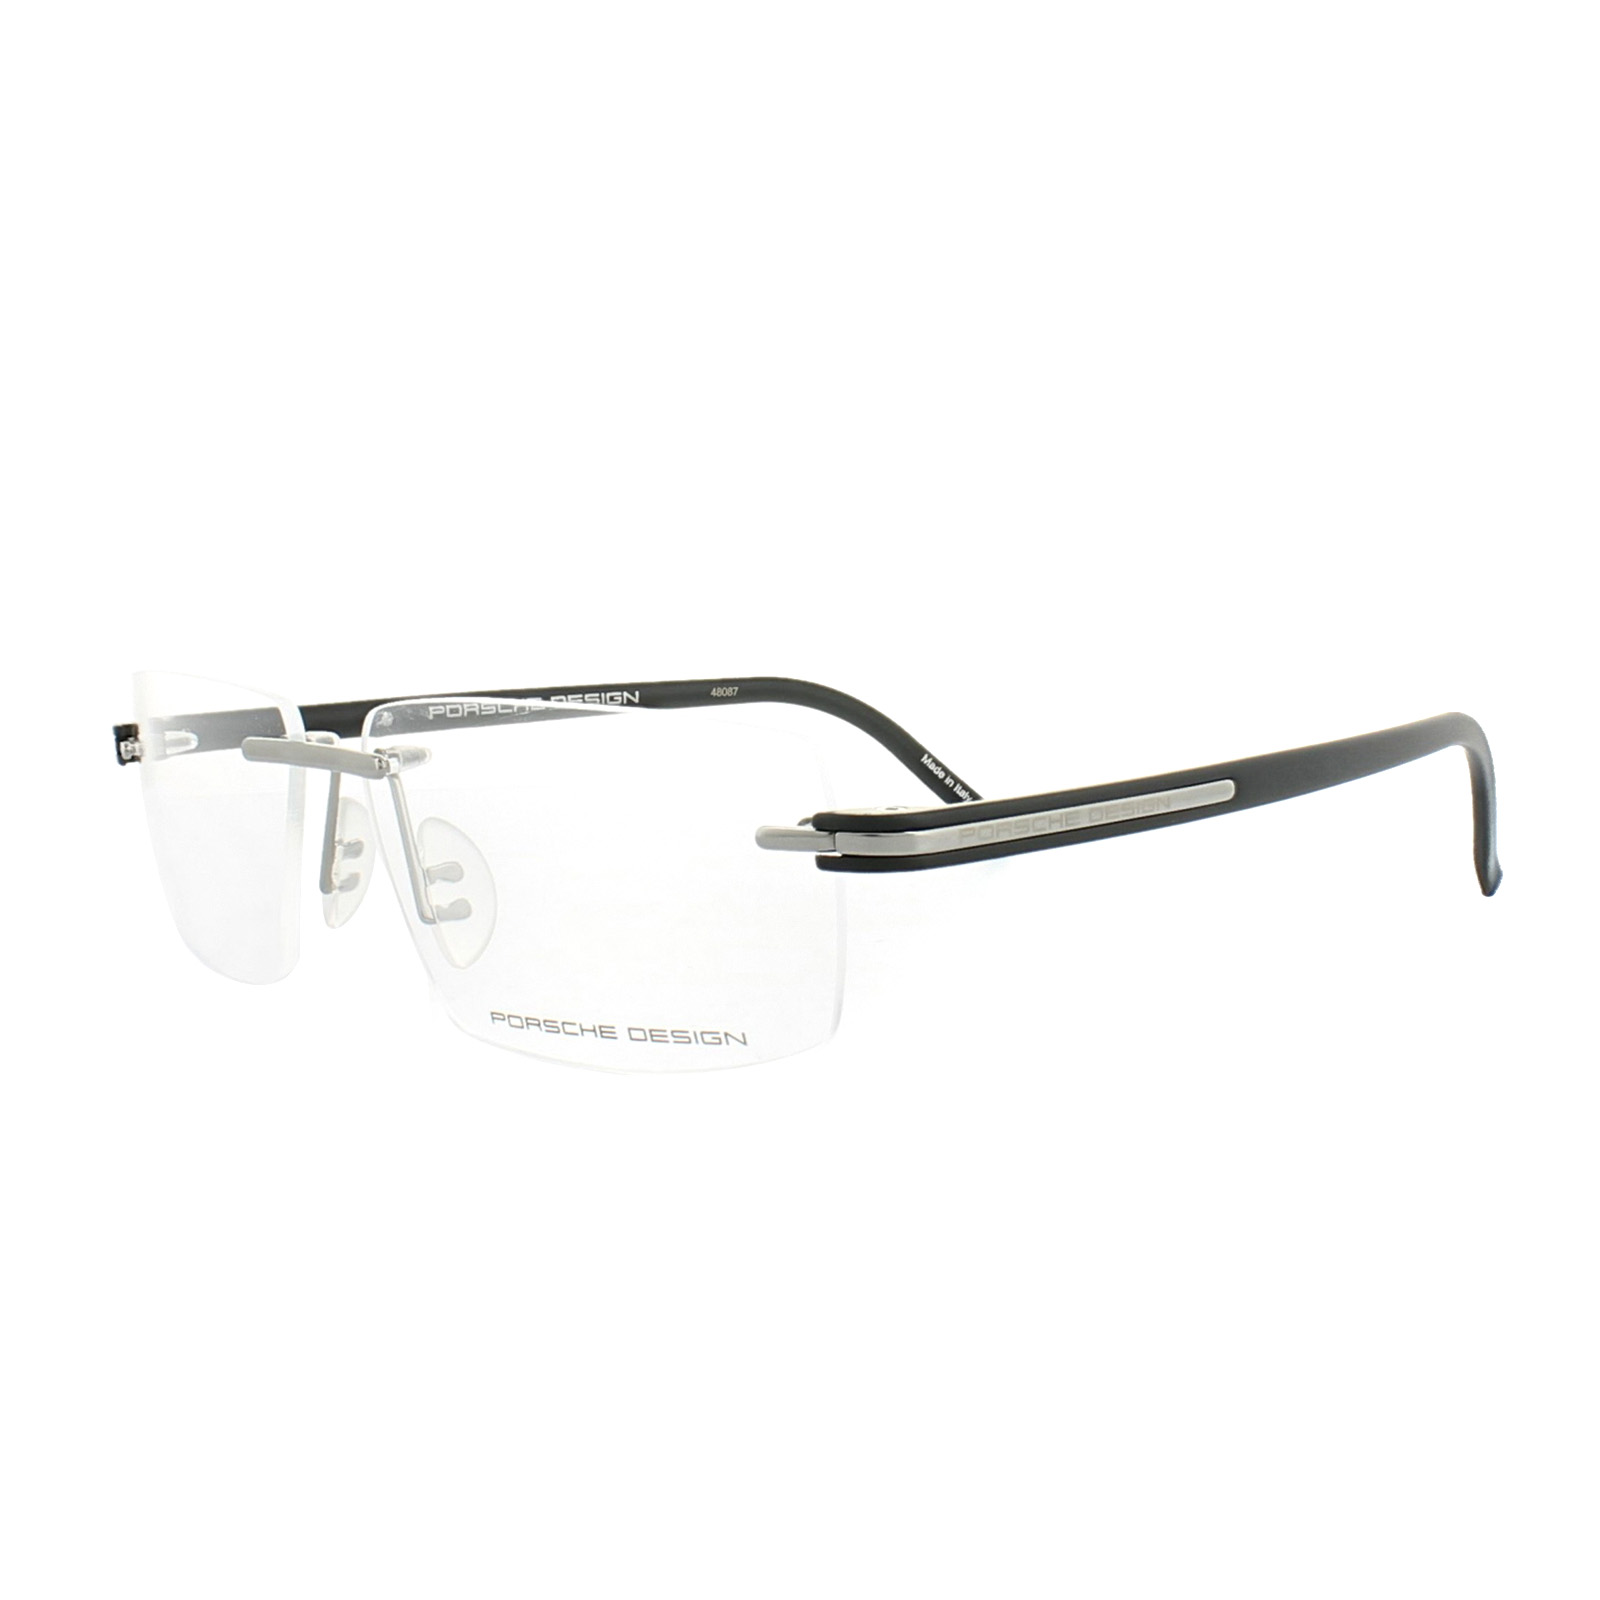 eac32801311 Sentinel Porsche Design Glasses Frames P8153 C Grey Matt Black Clear